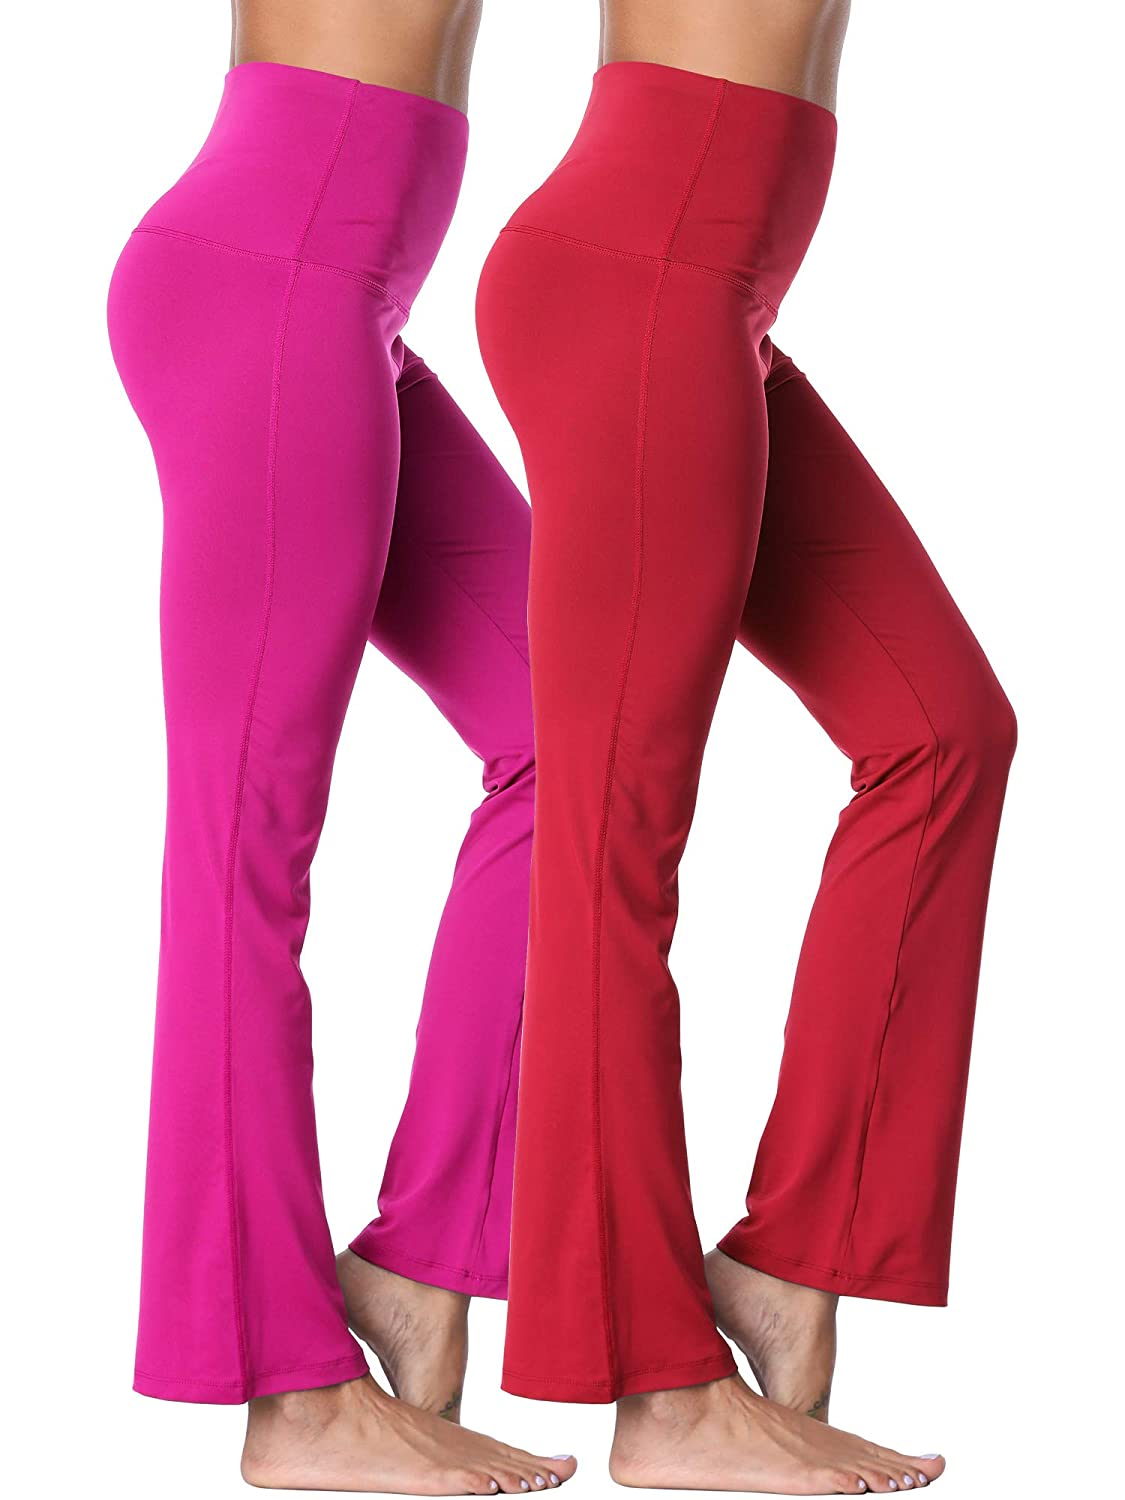 106  Red pink Red, 2 Pack Neleus High Waist Running Workout Leggings for Yoga with Pockets